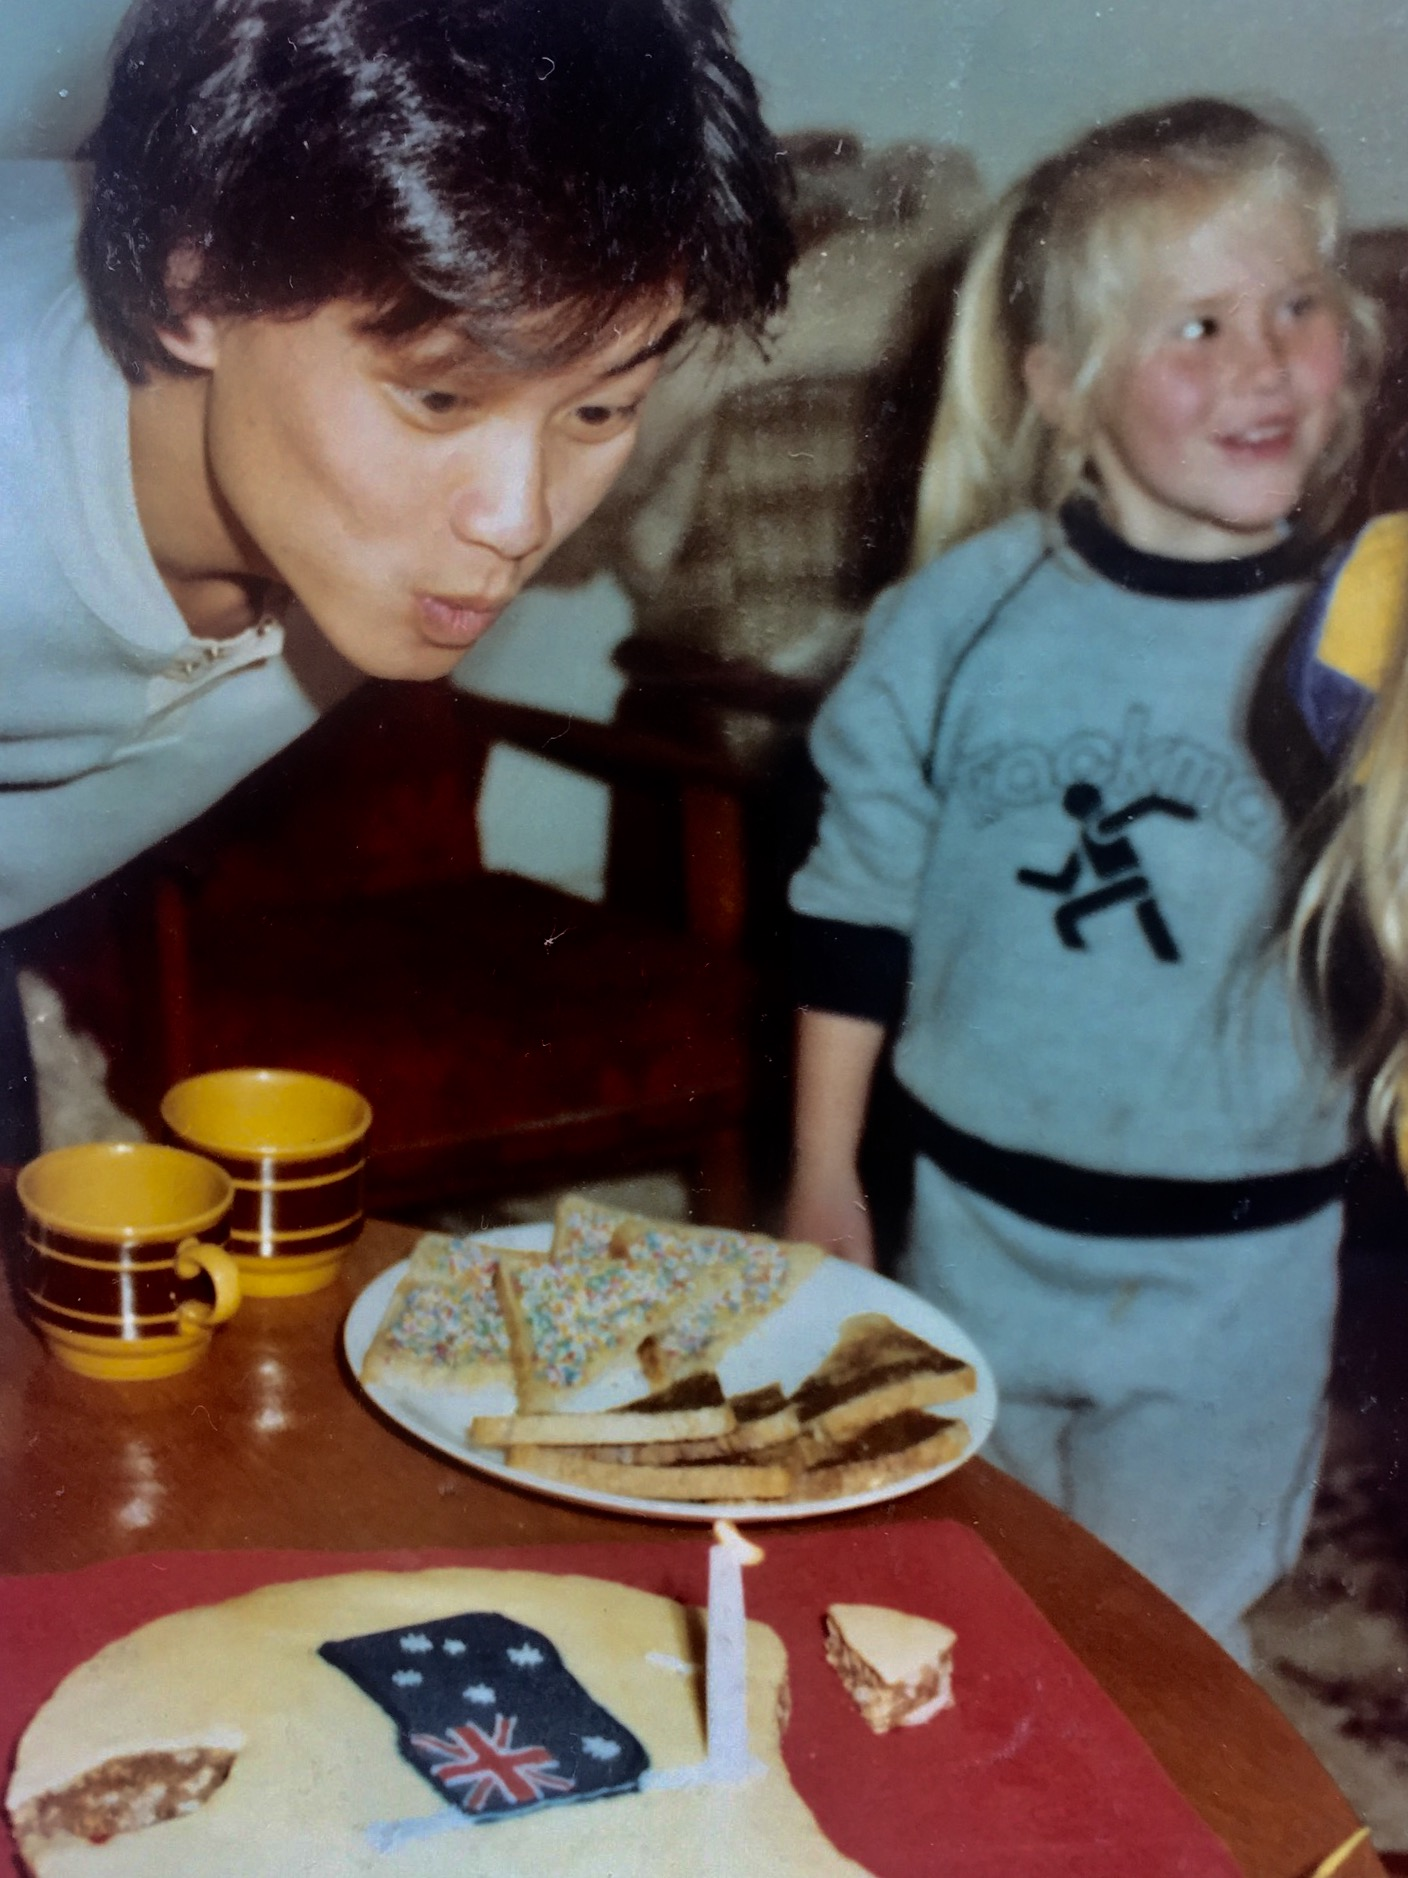 Dianne's daughter Eve and Tony at a party celebrating Tony's Australian citizenship in the early 80s.